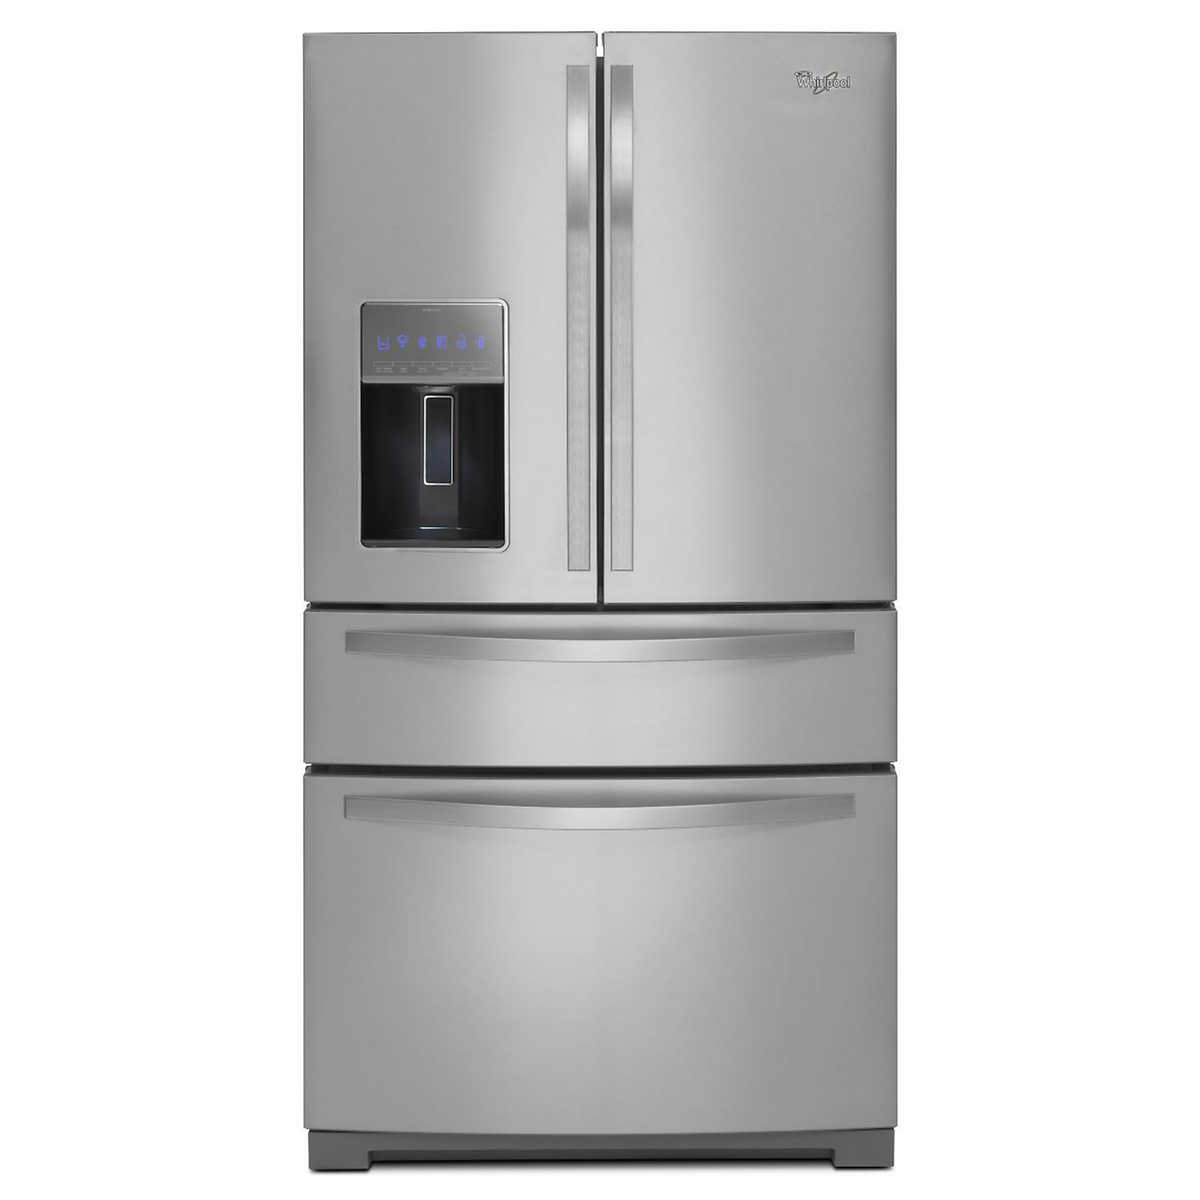 Whirlpool white ice costco canada - Whirlpool 26cuft 4 Door French Door Stainless Steel Refrigerator With More Flexible Storage